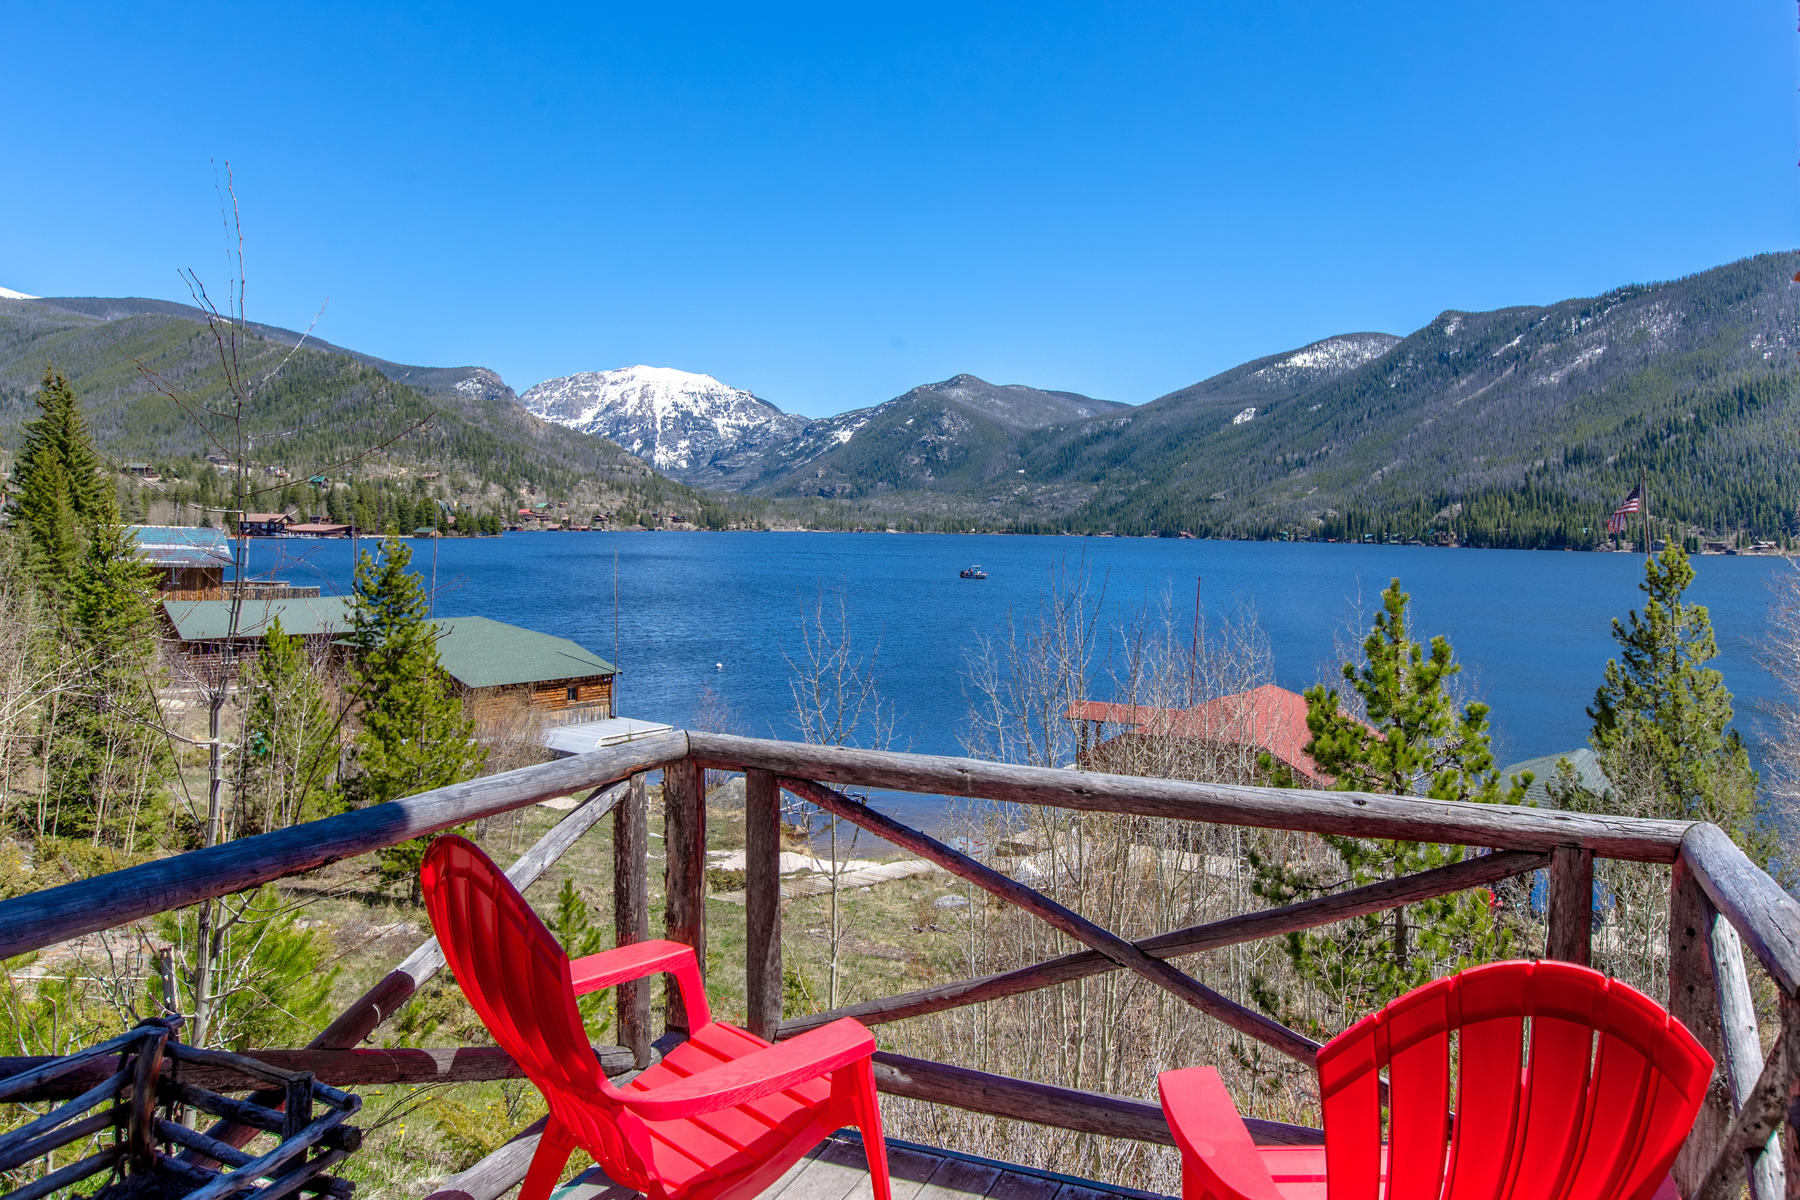 Casa Unifamiliar por un Venta en Perched above Grand Lake, this custom lakefront home is exceptional in style. 530 Cairns Ave Grand Lake, Colorado 80447 Estados Unidos